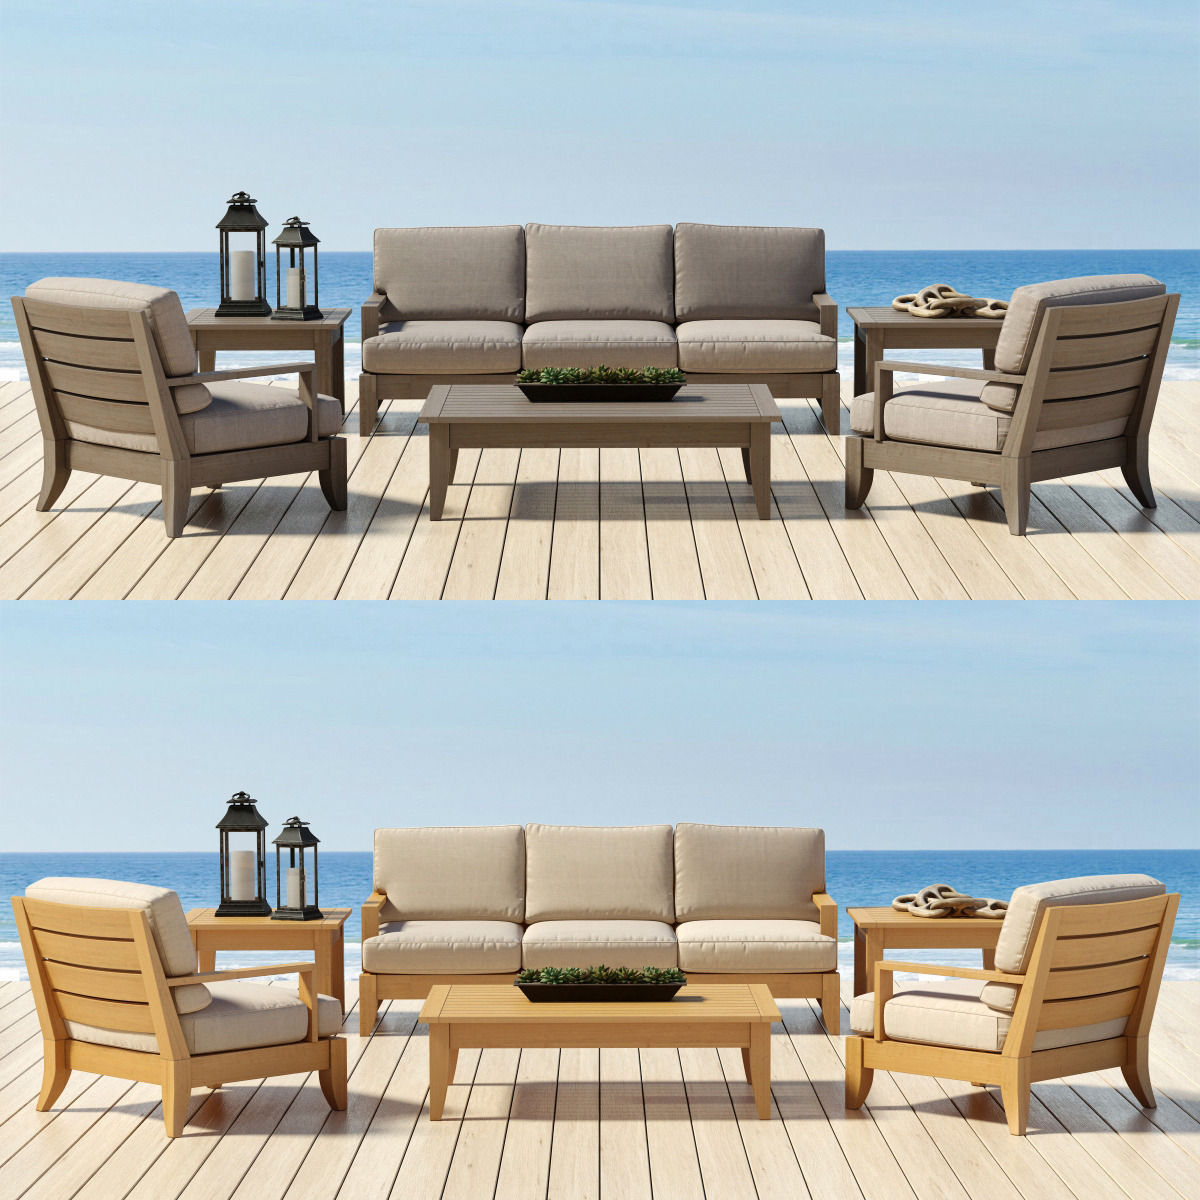 restoration hardware santa barbara collection 3d model max obj fbx - Garden Furniture 3d Model